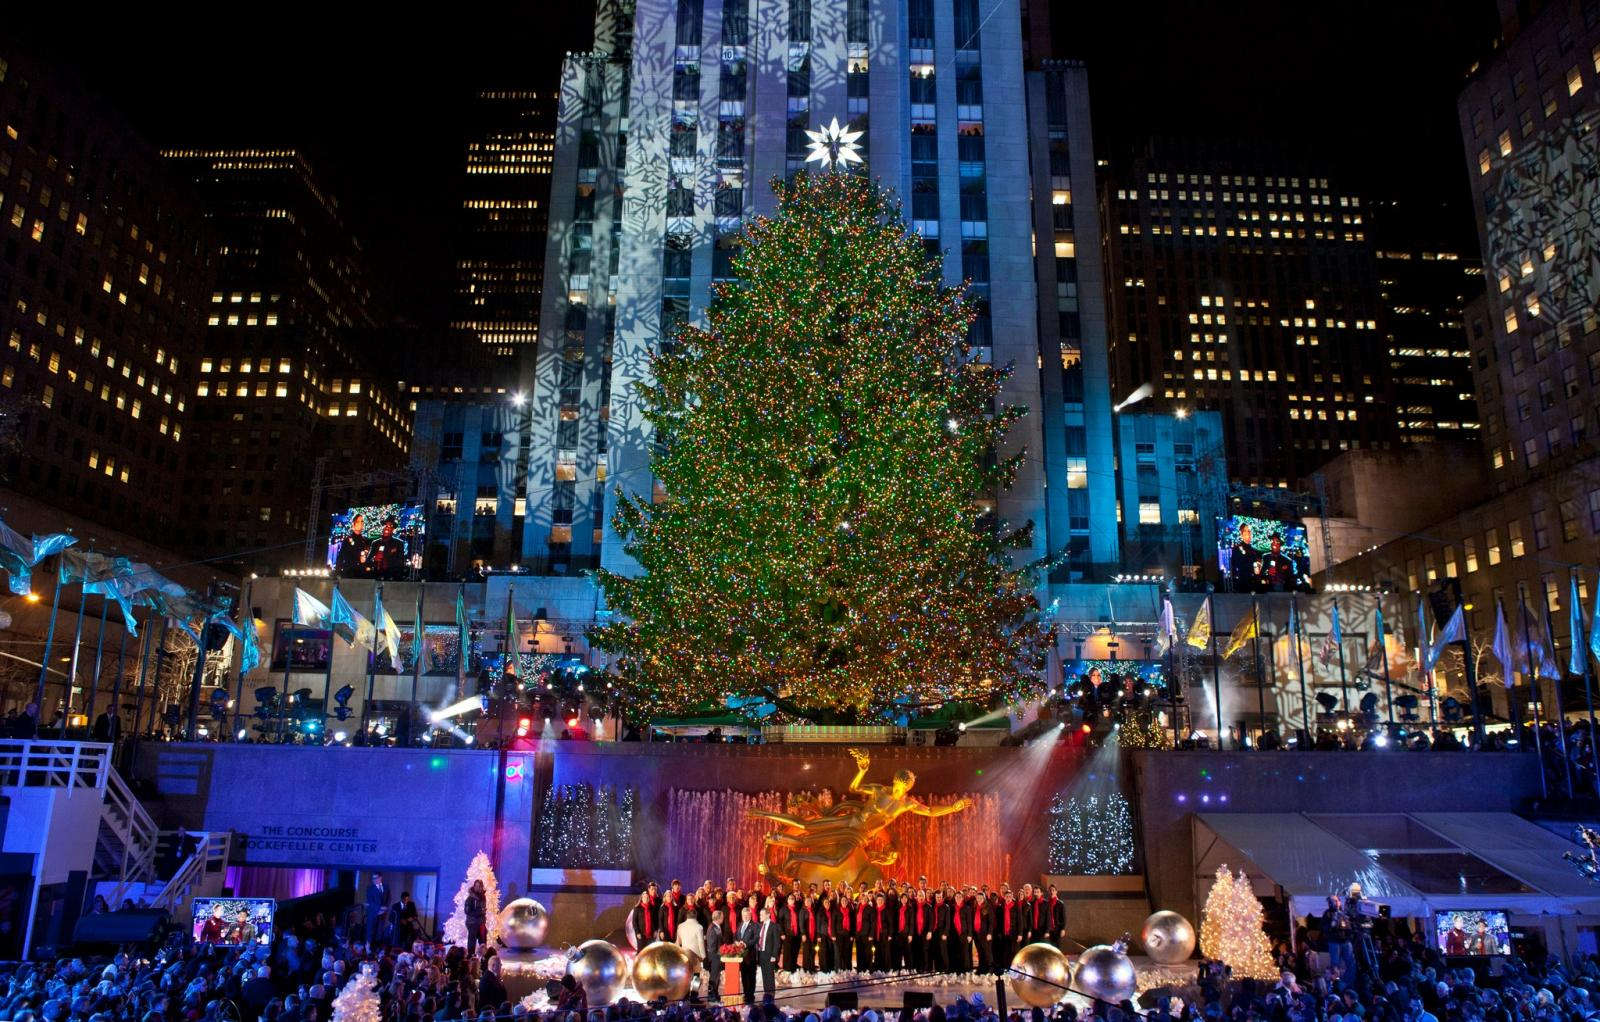 Arbol rockefeller Center, Nueva York